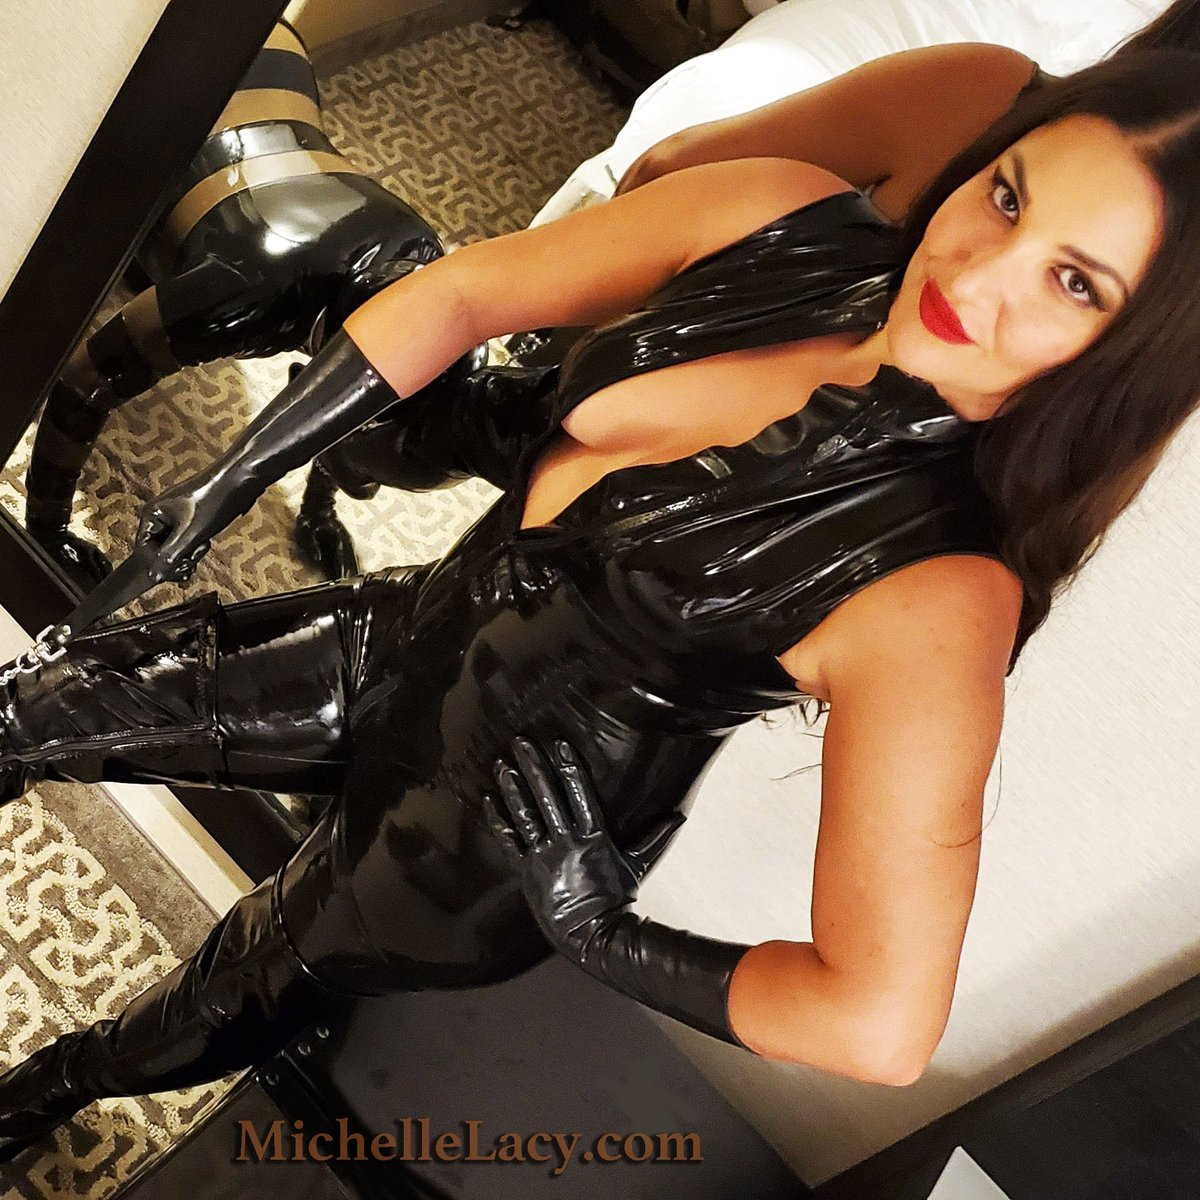 Inspiration: @FLDominatrix MichelleLacy.com FOLLOW AND SUPPORT MISTRESS MICHELLE LACY The iconic Mistress lost her old Twitter account. But now she's back. So do the right thing. Show your support. Follow the new account. FOLLOW: @FLDominatrix